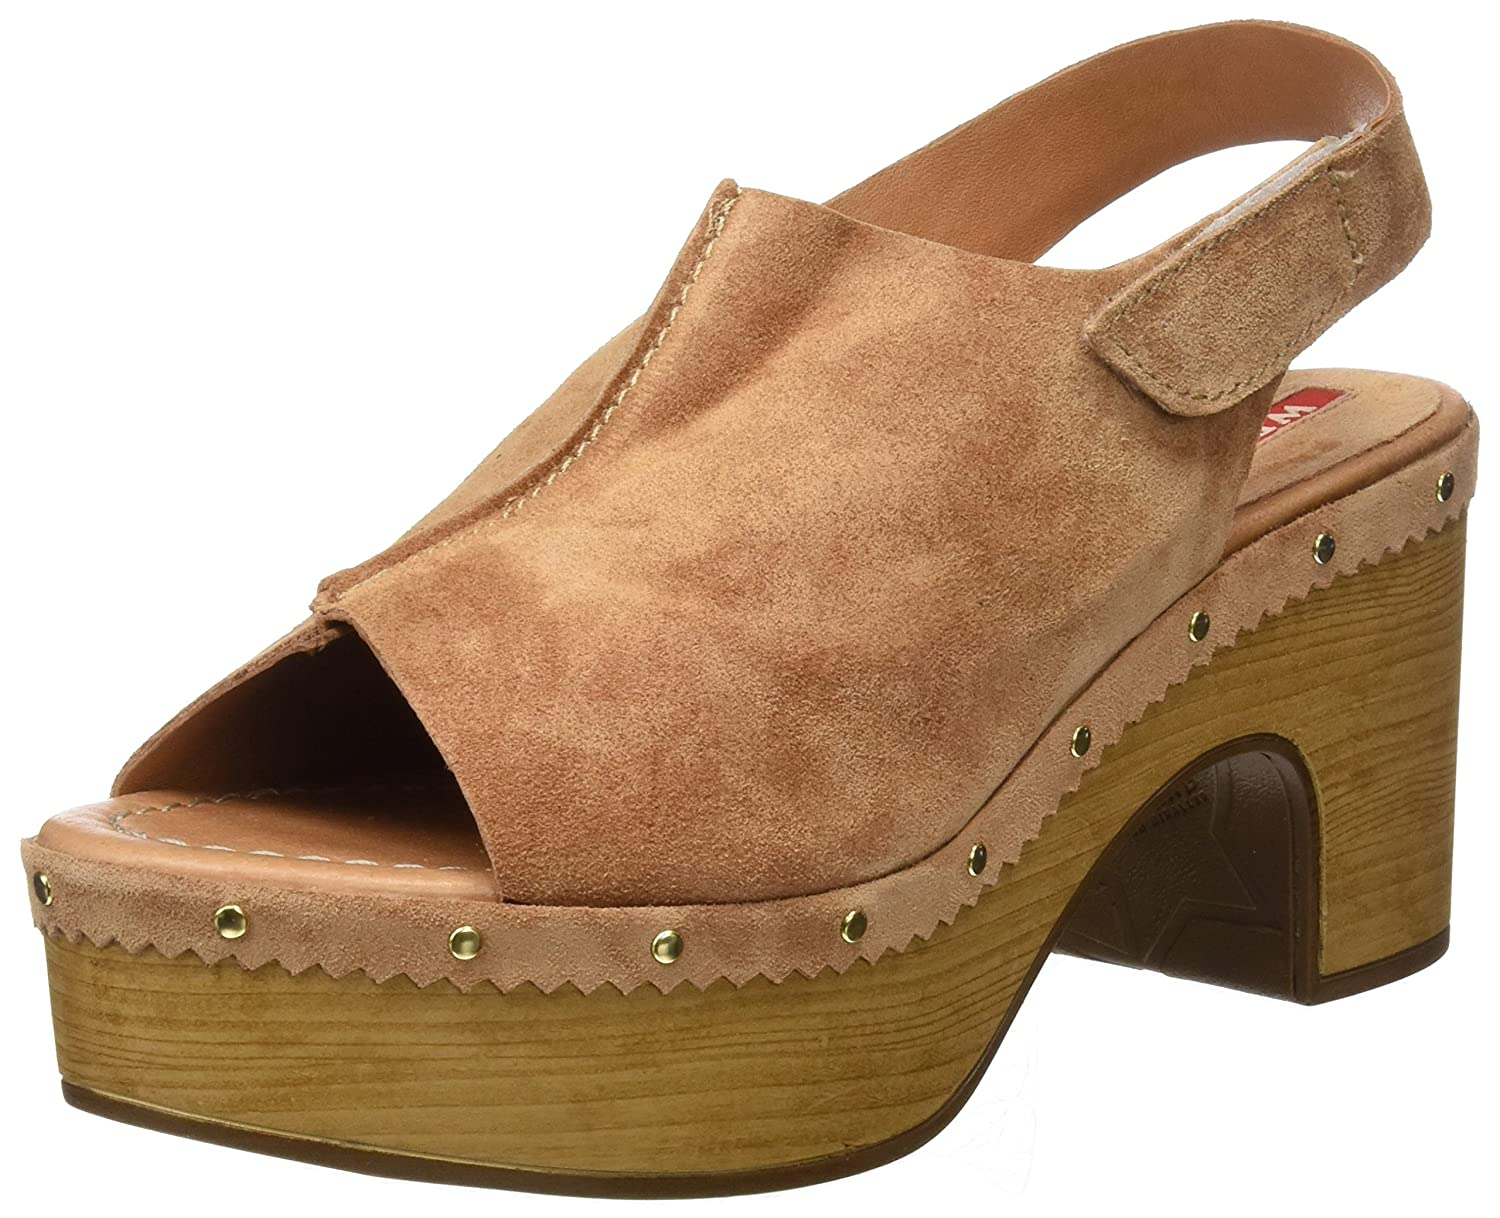 Weekend by Pedro MIRALLES 17308, Zuecos para Mujer 40 EU Rosa (Nude)